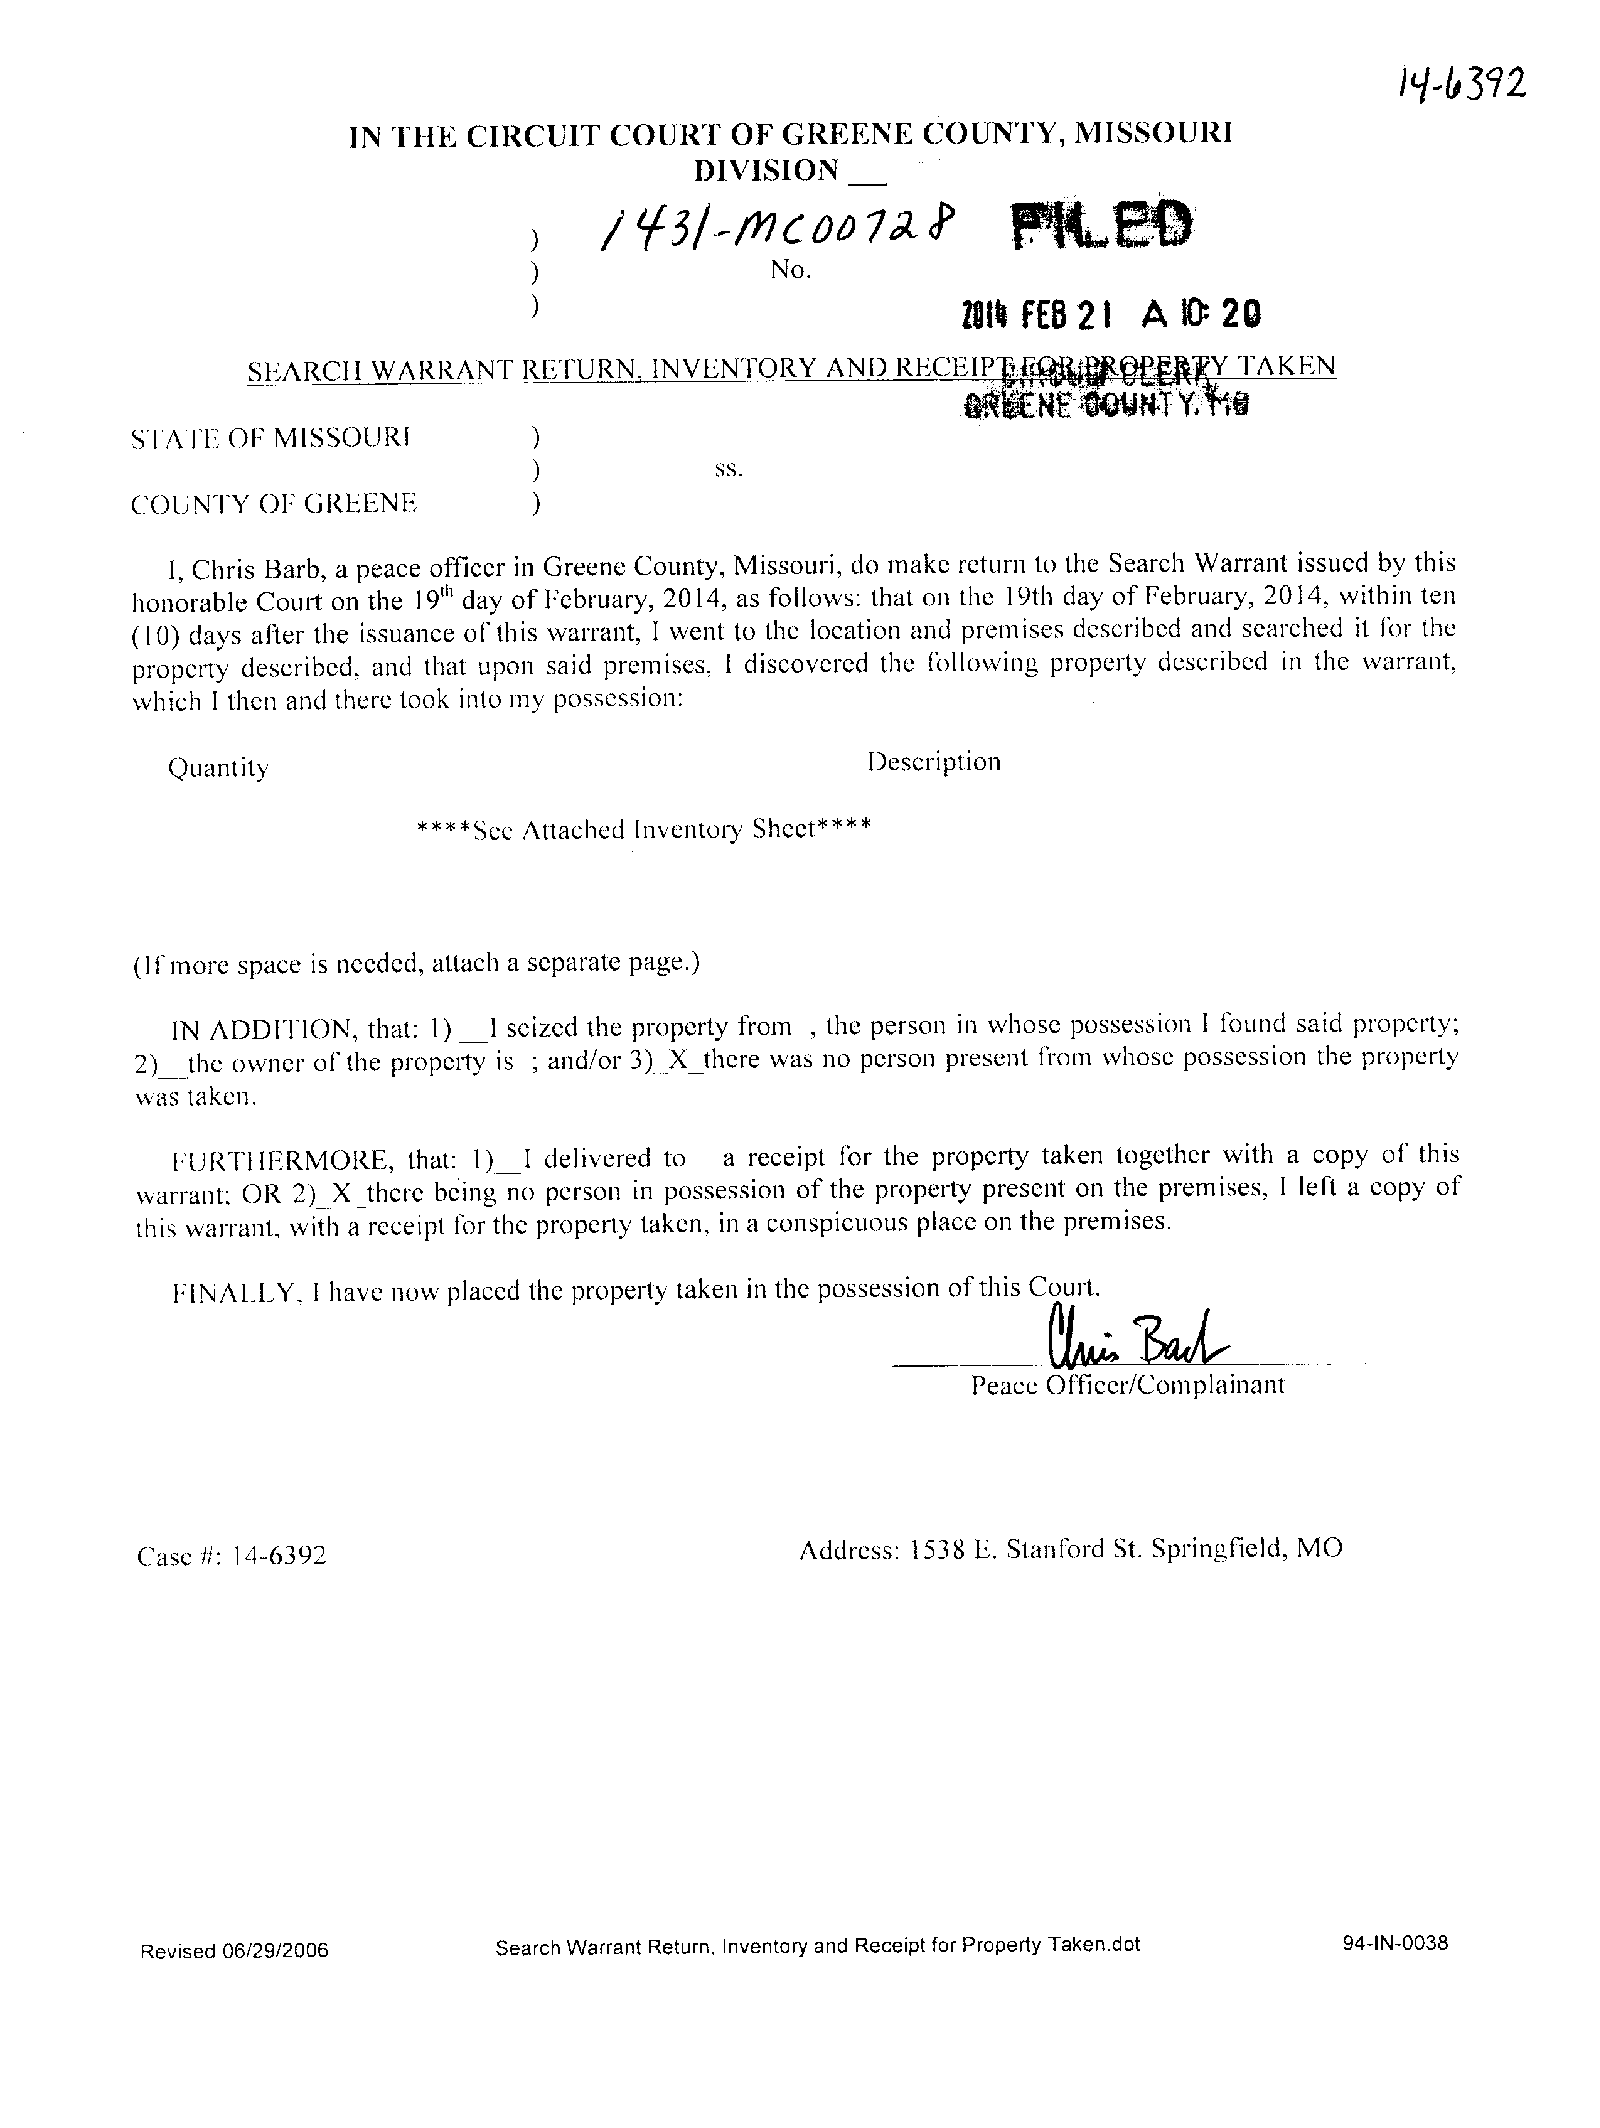 Copy of Search Warrant Return01.png